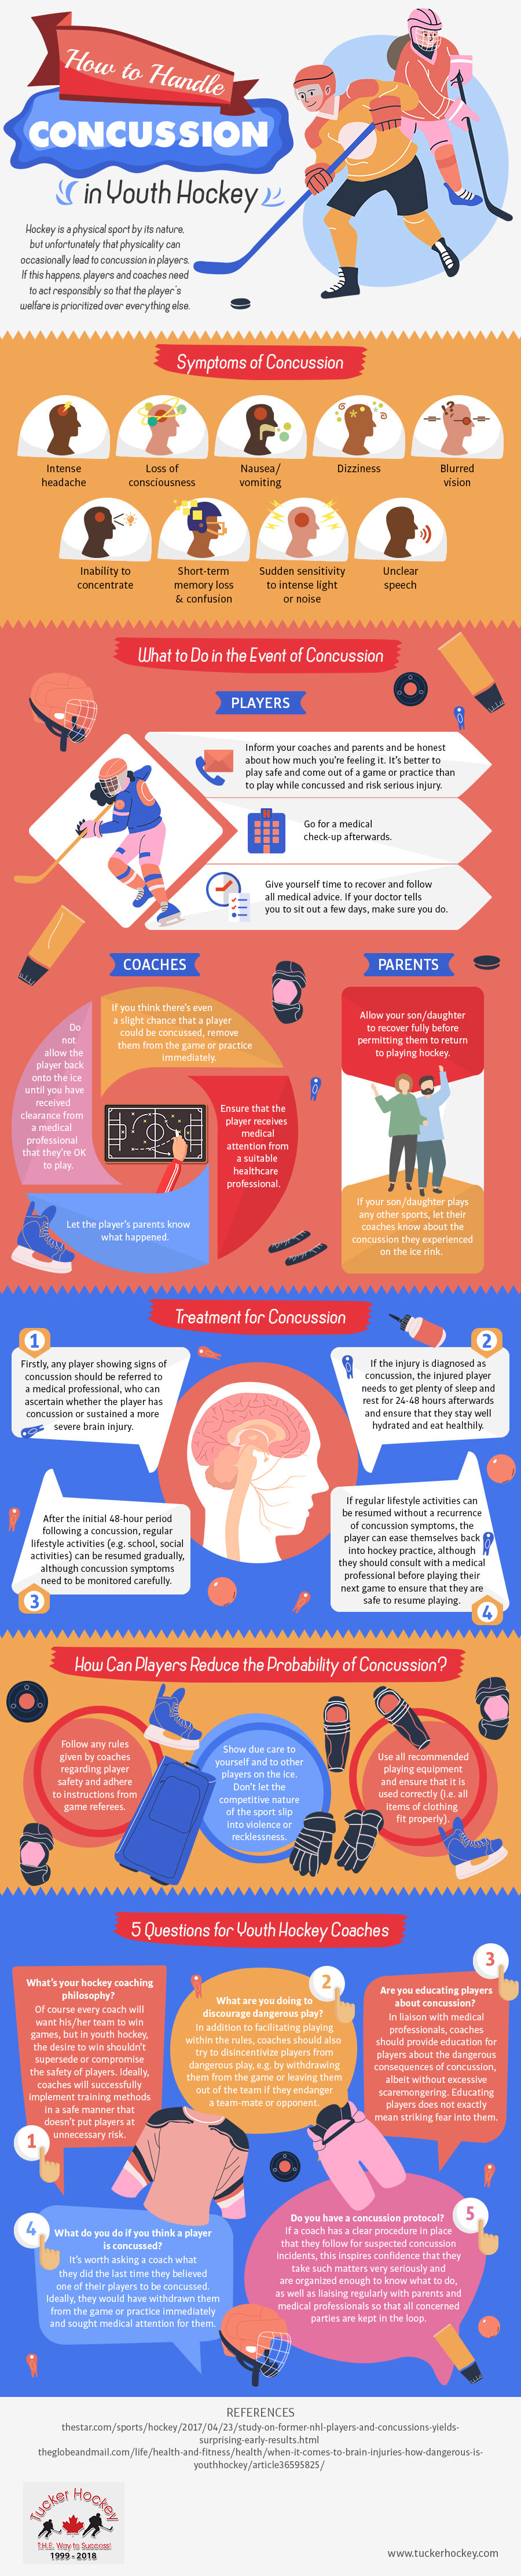 infographic youth hockey concussion